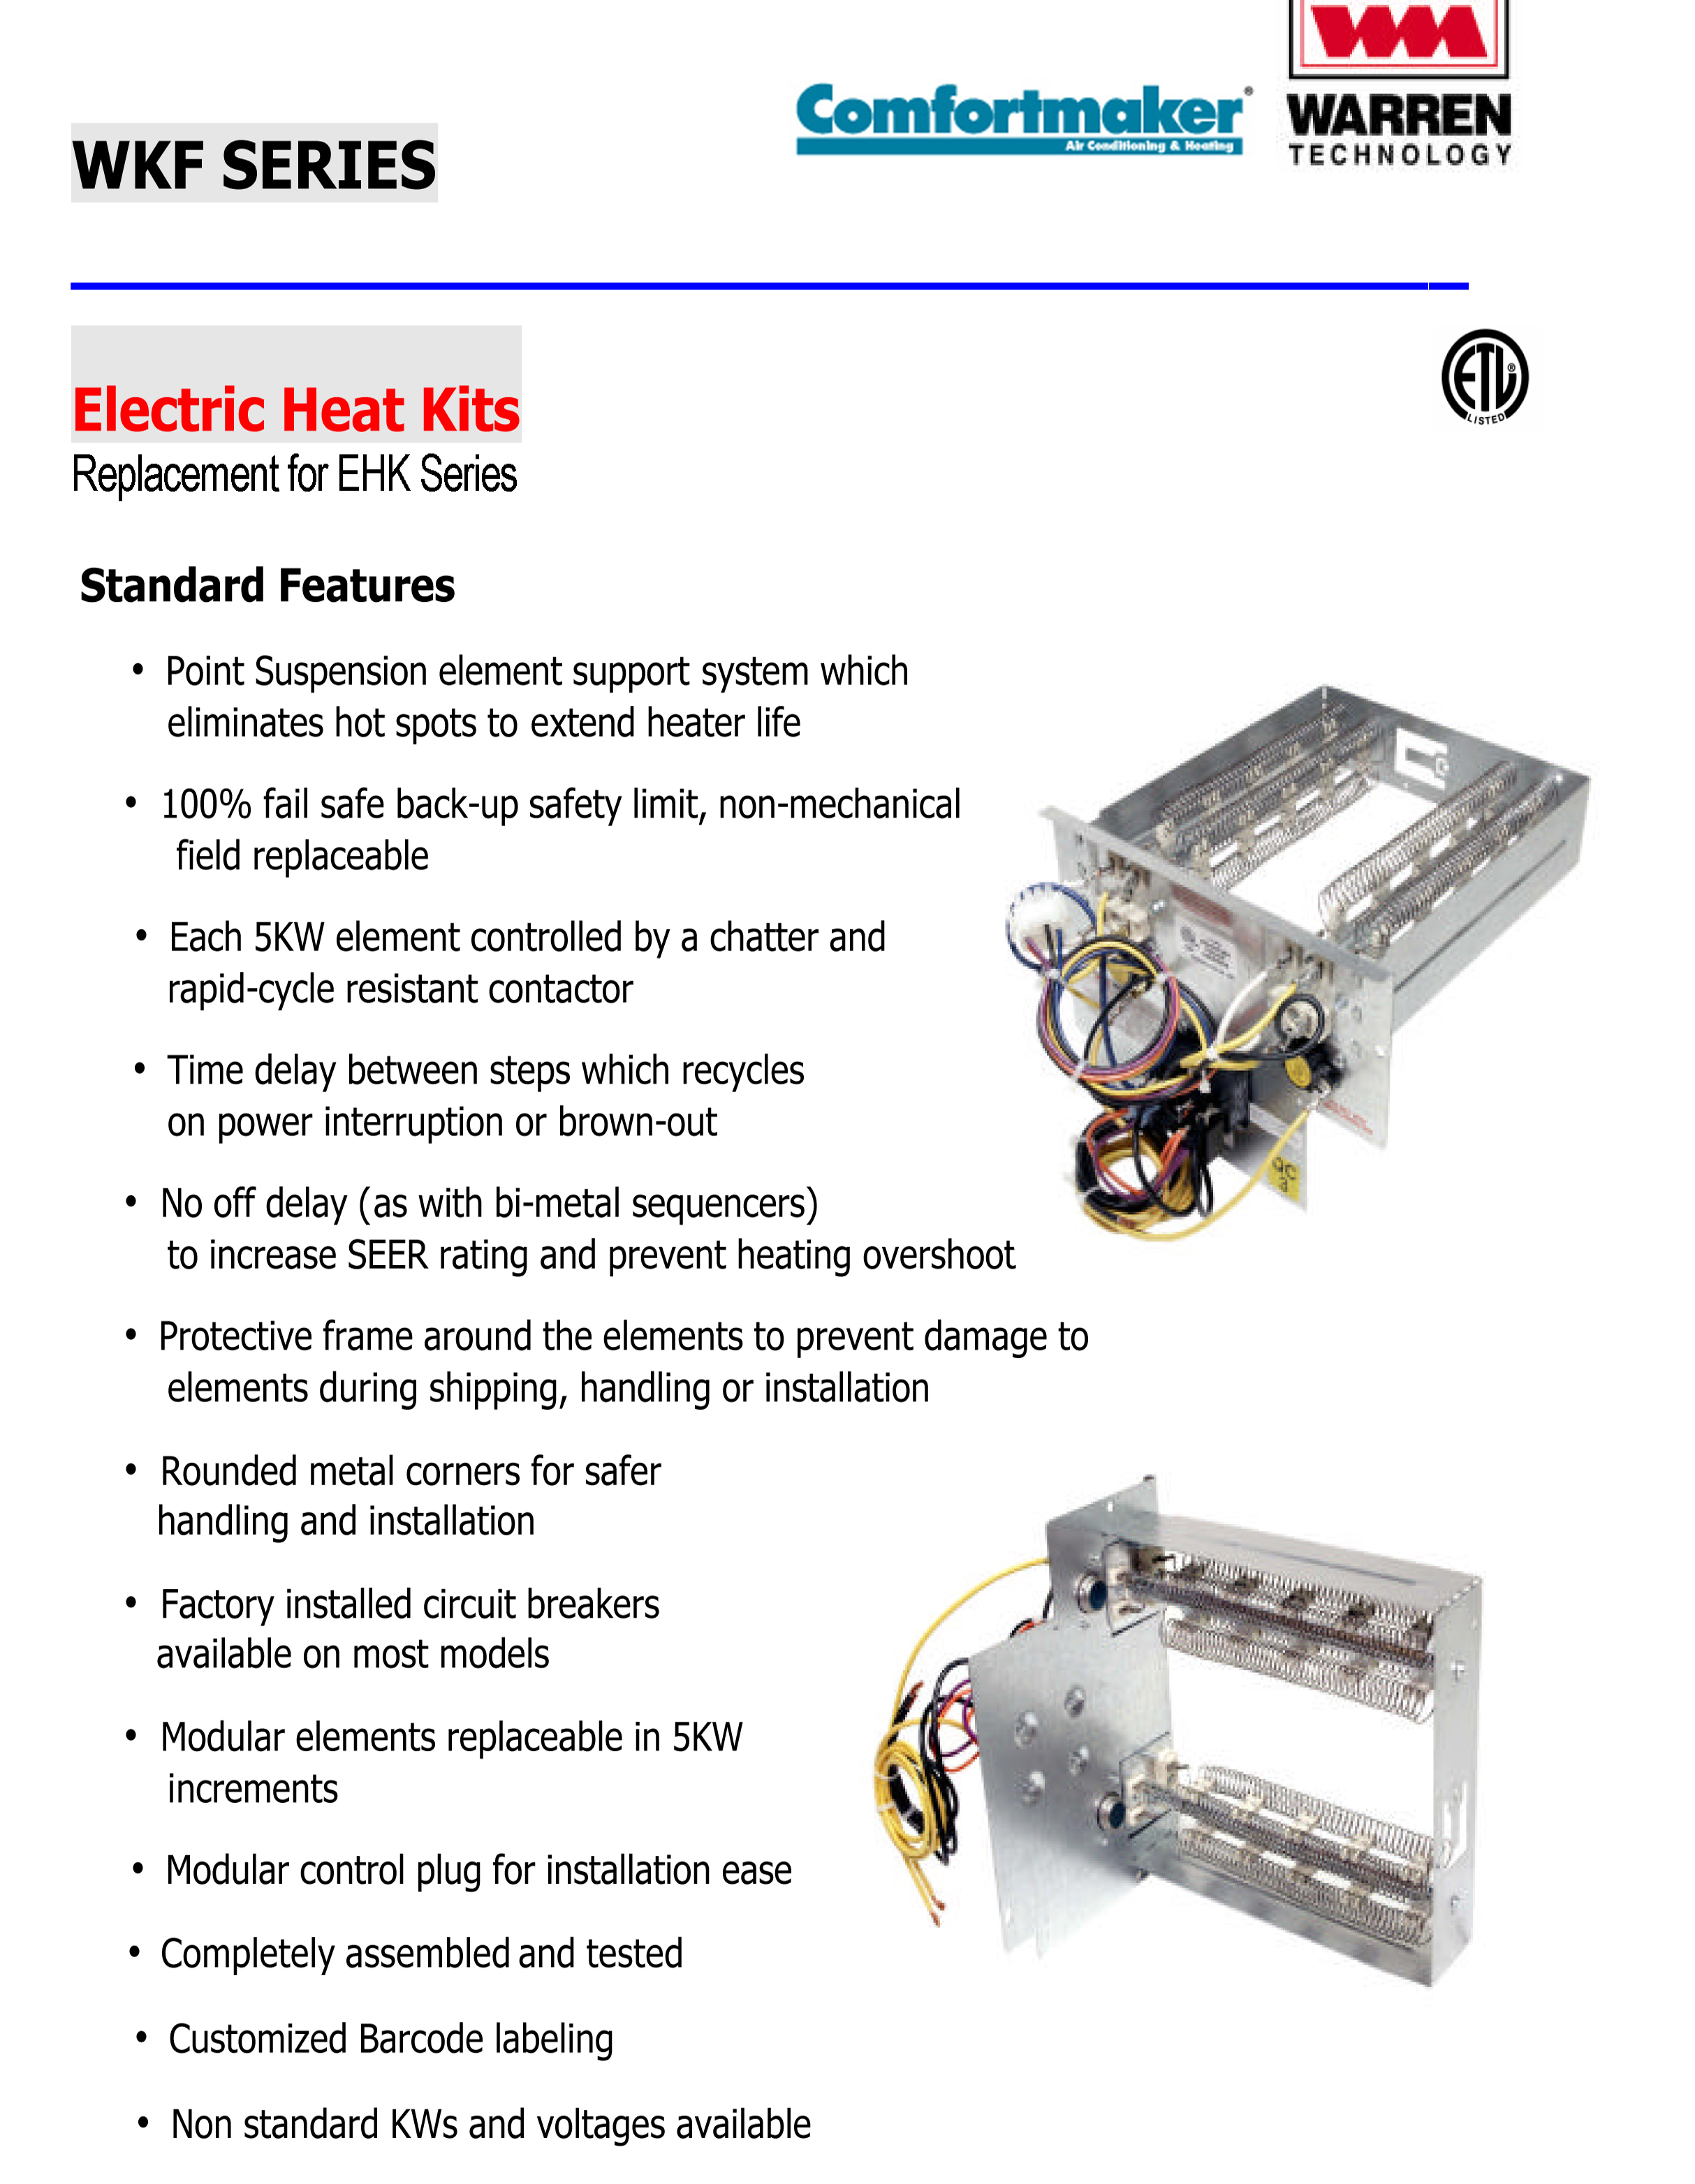 10 kw heat strip for comfortmaker air handlers eb(p/x/v), wa, fe, fs, fv, fx wkf1002 comfortmaker air handler wiring diagram